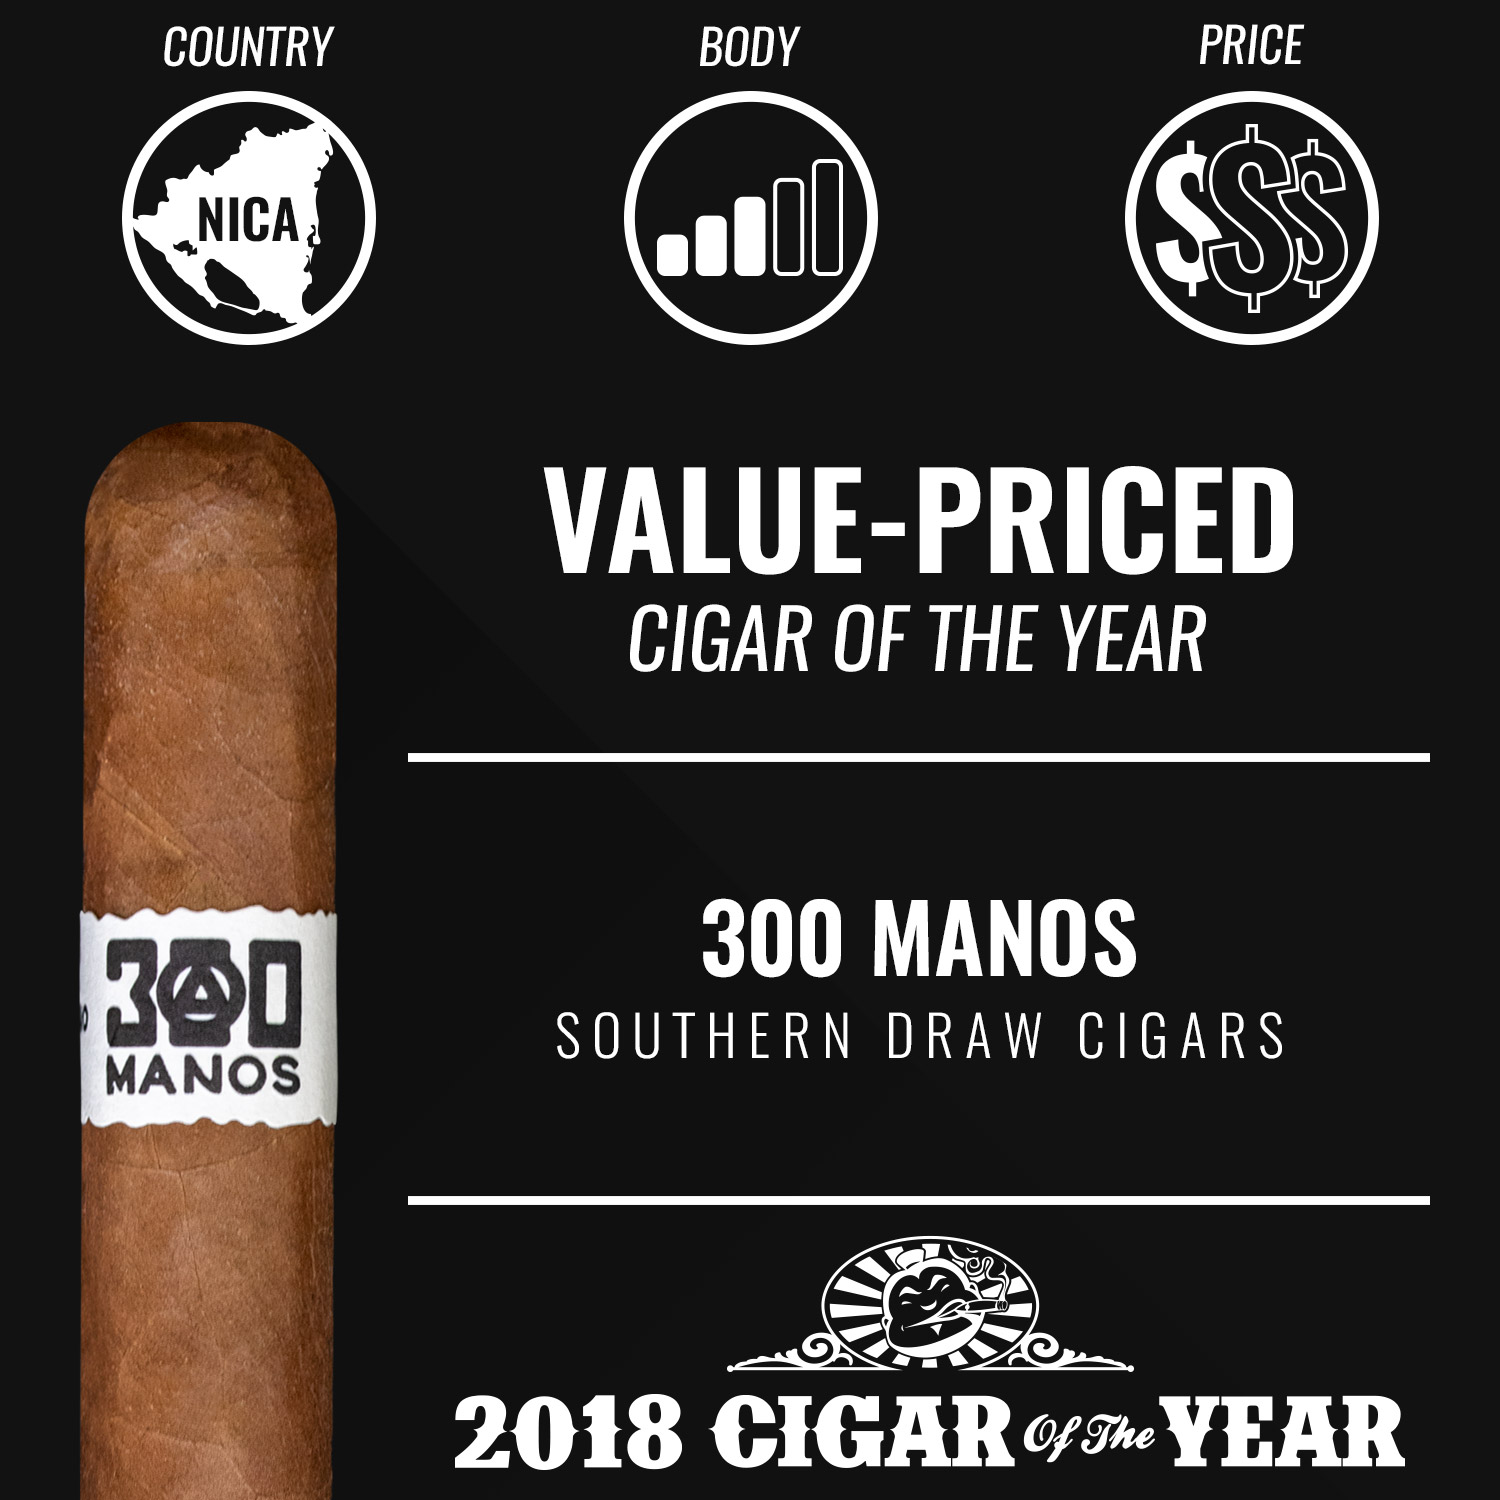 Southern Draw 300 Manos Habano Value-Priced Cigar of the Year 2018